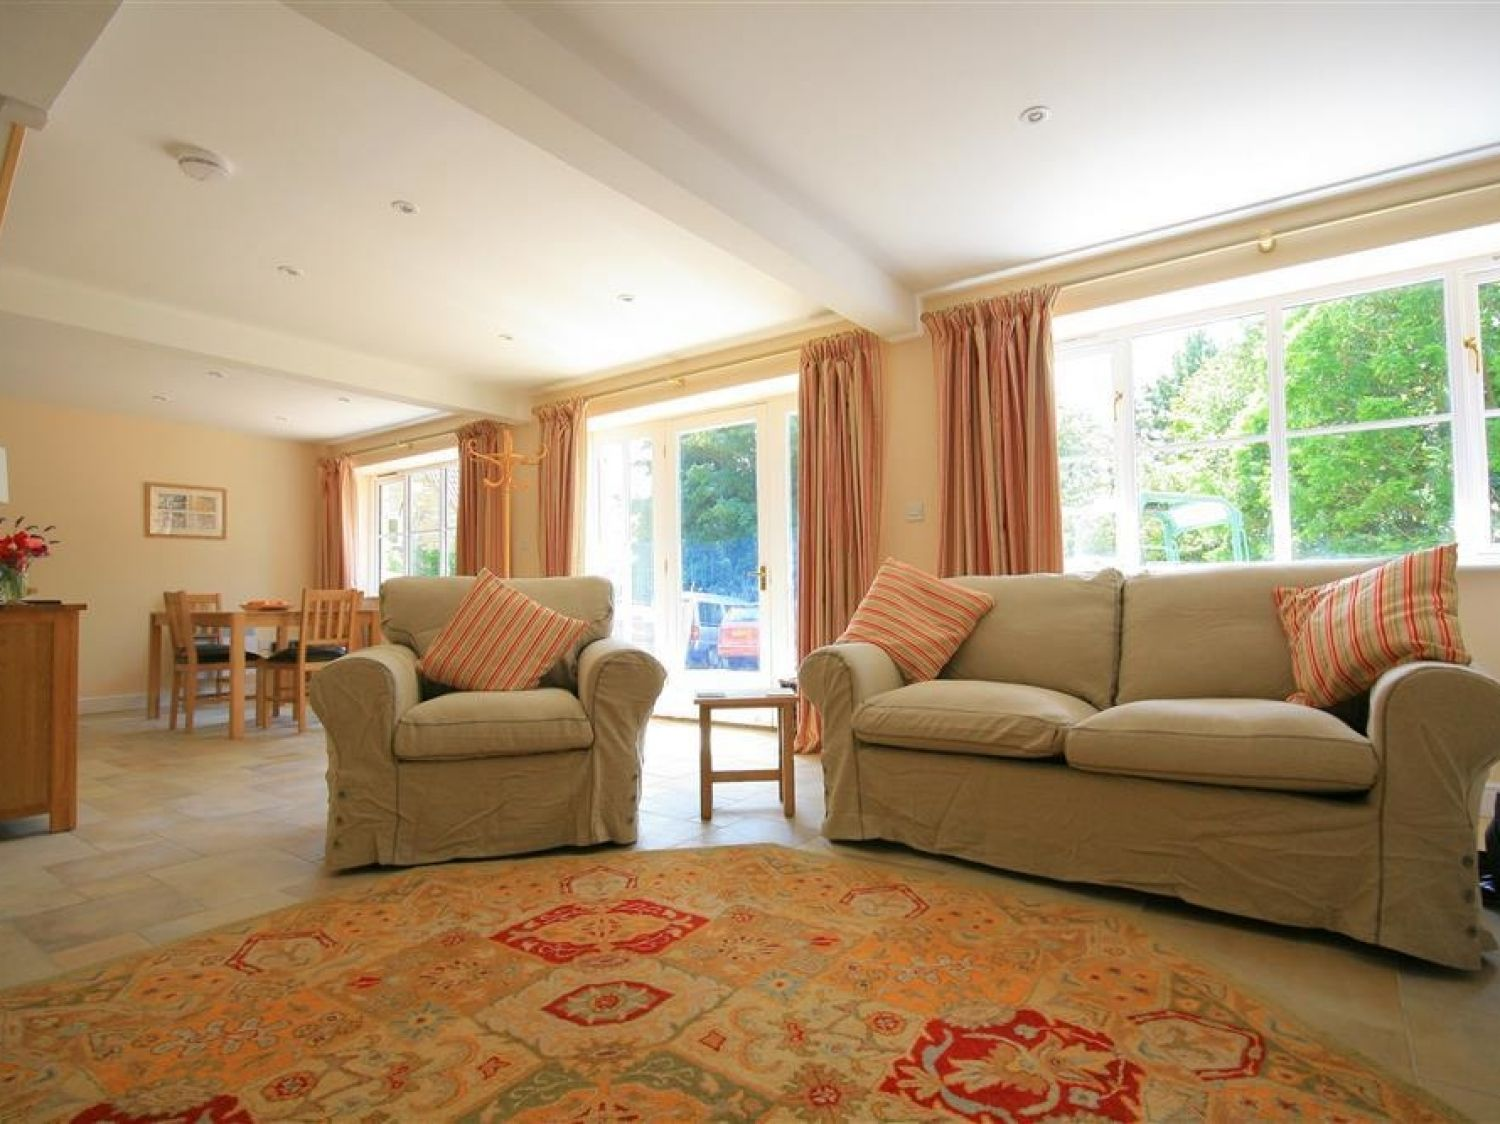 The Cottage At Barrow Mead in Bath - sleeps 4 people